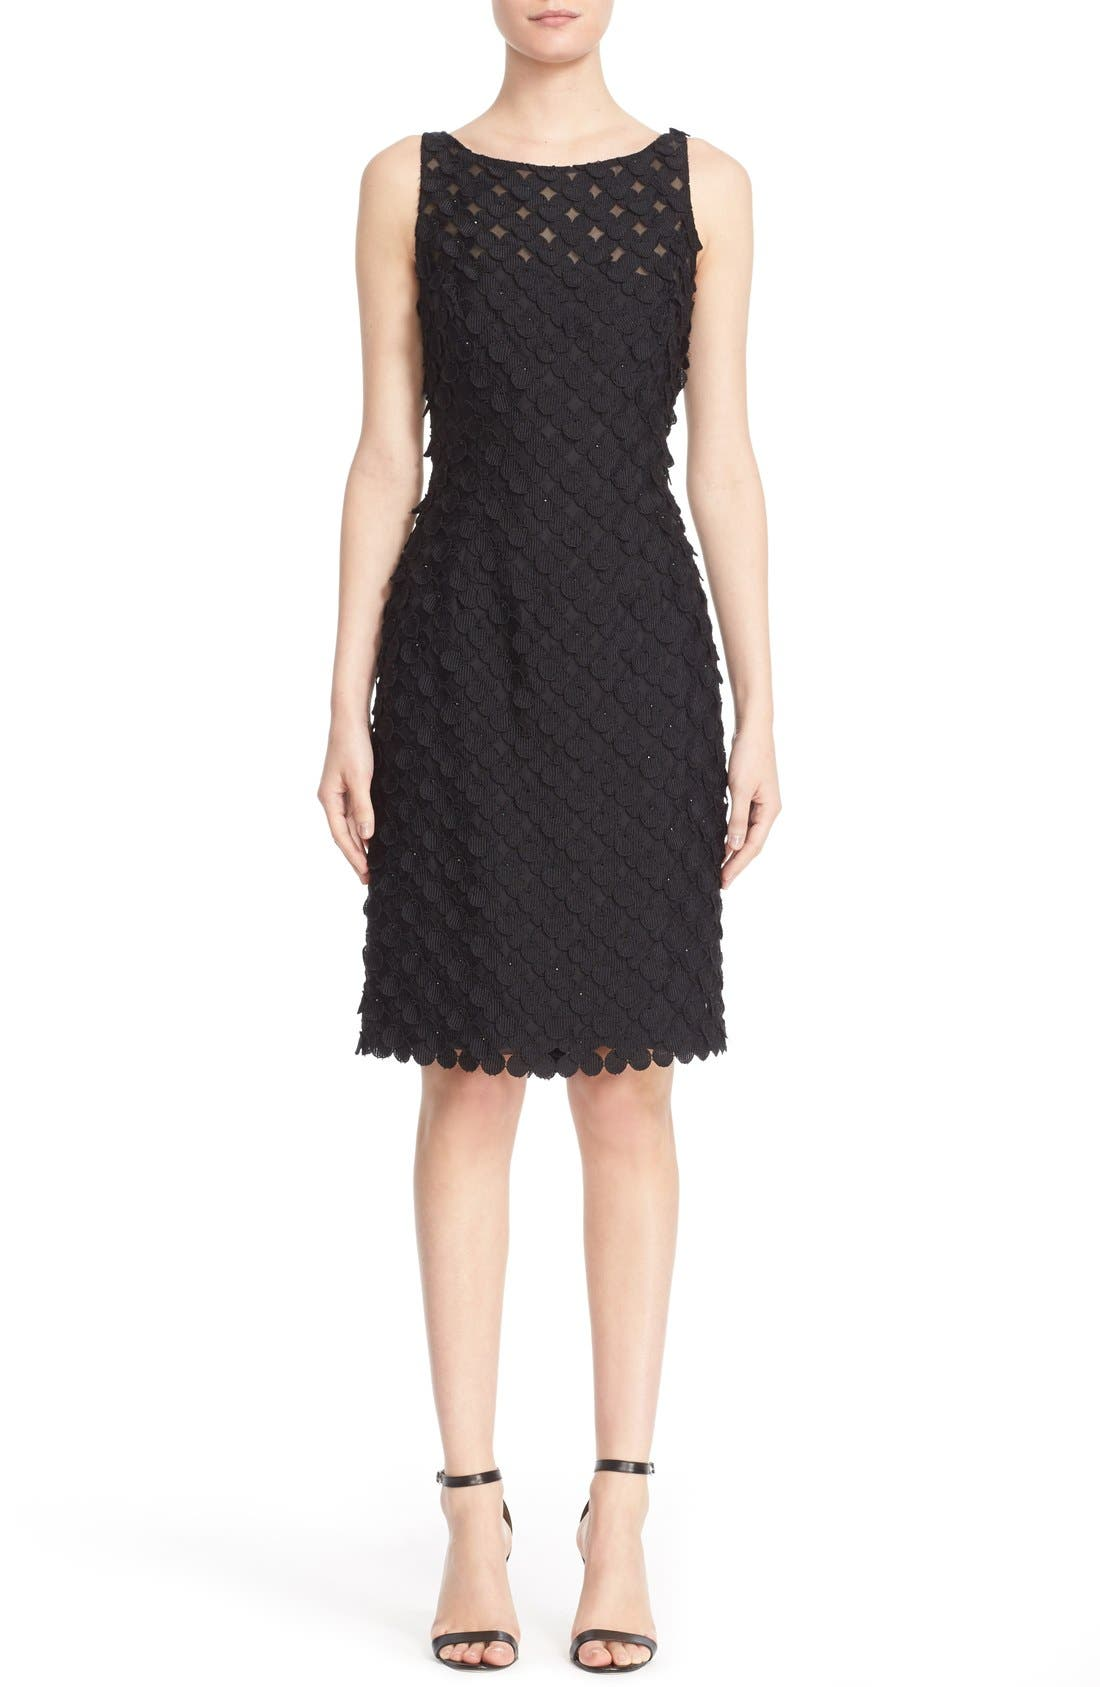 CARMEN MARC VALVO COUTURE Circle Appliqué Sleeveless Sheath